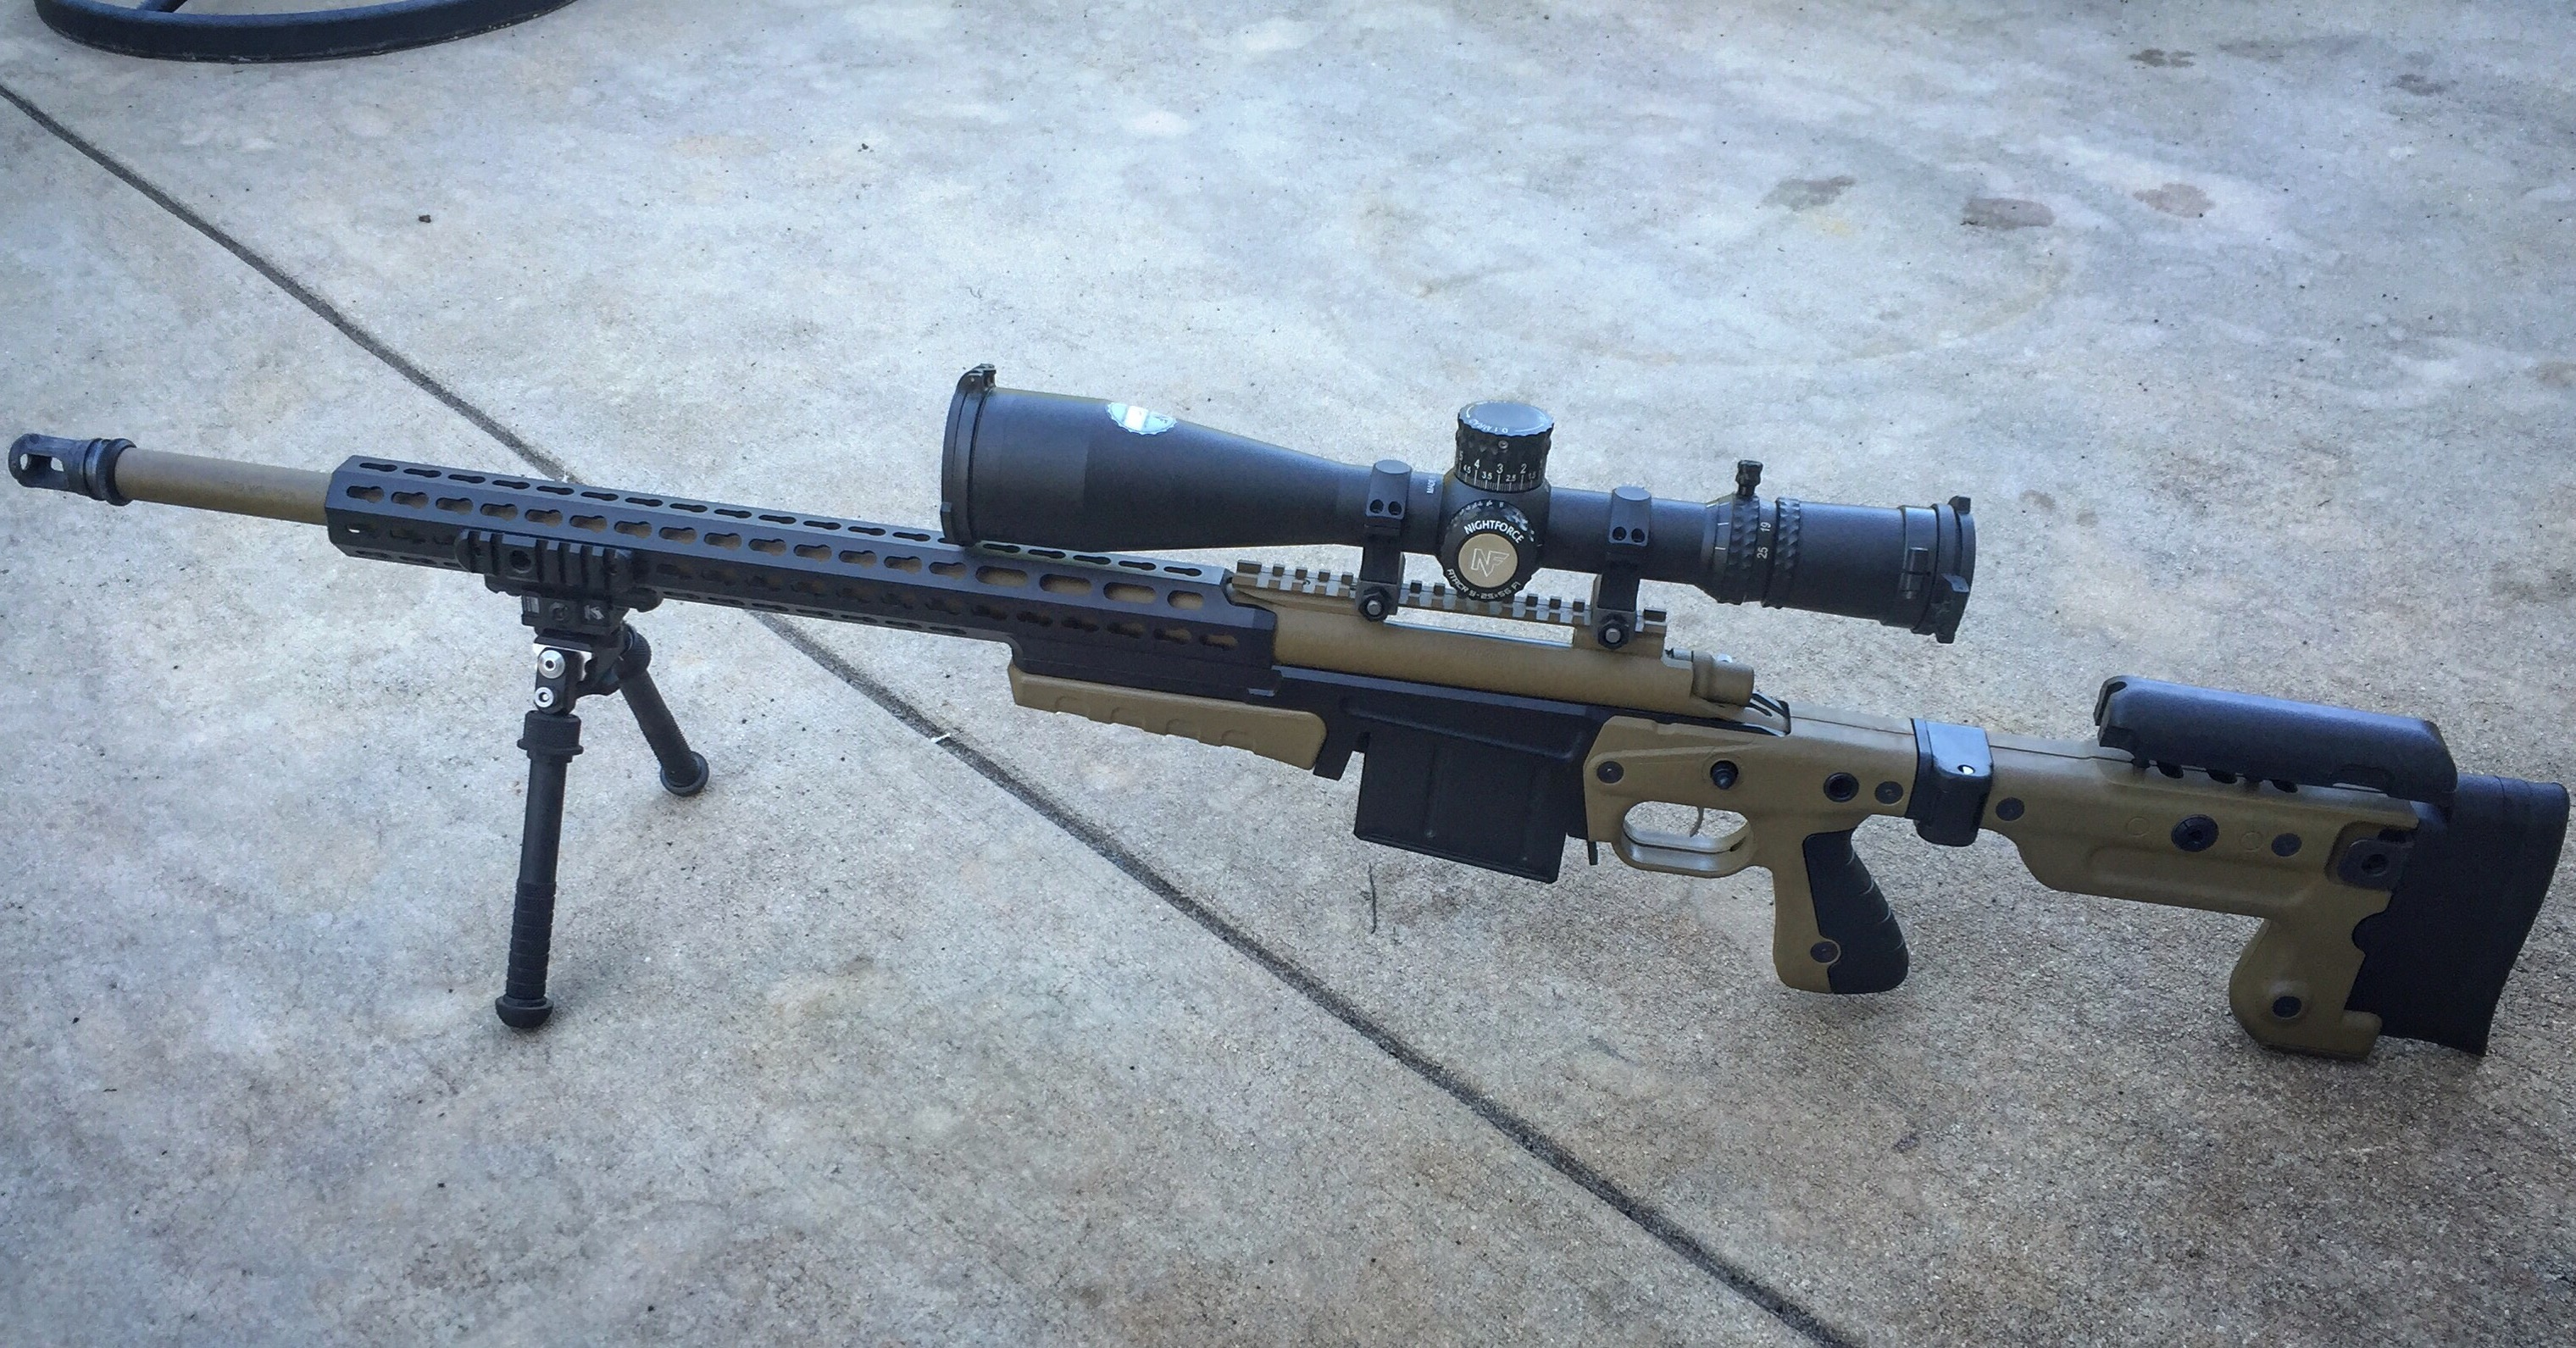 Accurate Ordnance  300 Win Mag - AX Chassis & Nightforce 25x